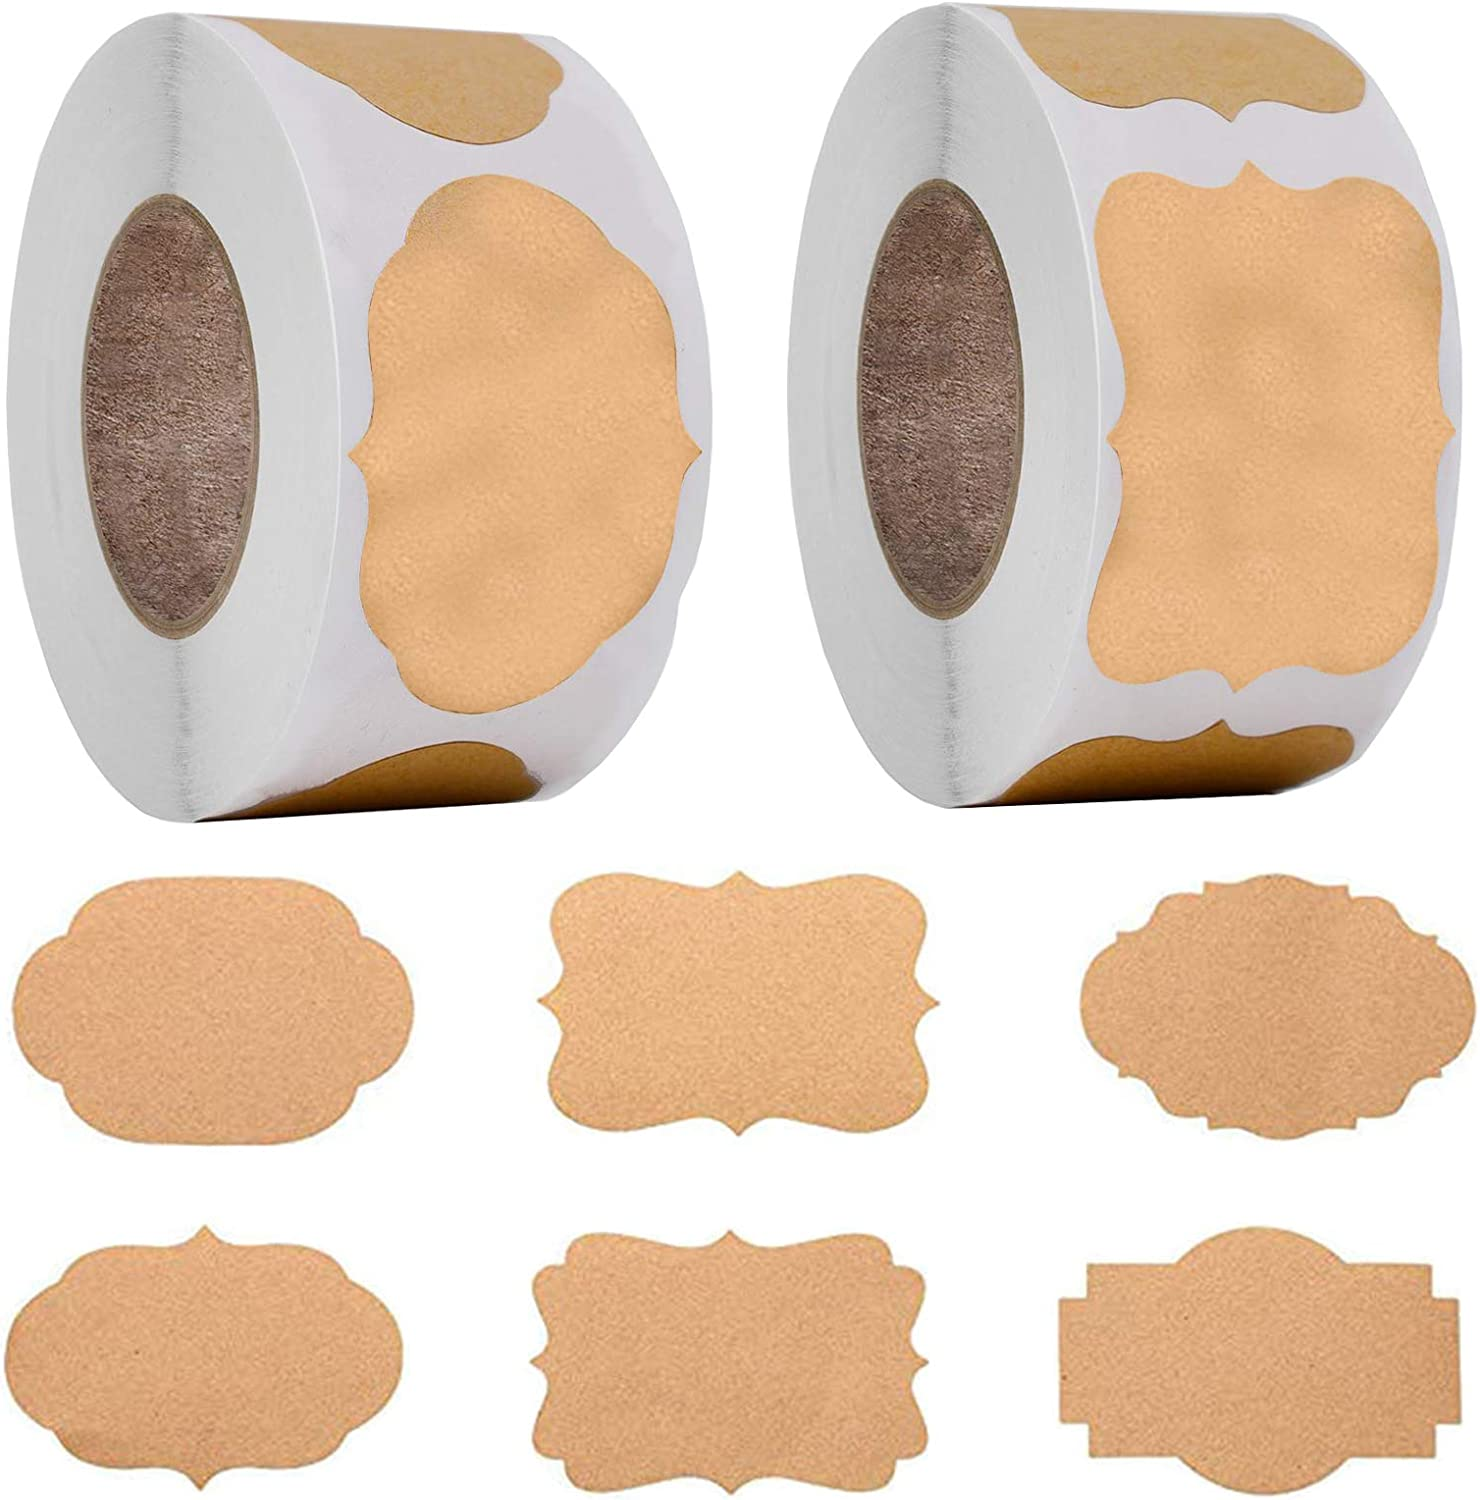 600PCS Kraft sticker Gift Tags Blank Natural Brown Kraft Sticker Paper Labels Roll 6 Scalloped Style Christmas Gift Tags for Holiday Glass Essential Oil Bottle Food Jar Gift Present Supplies 1.2